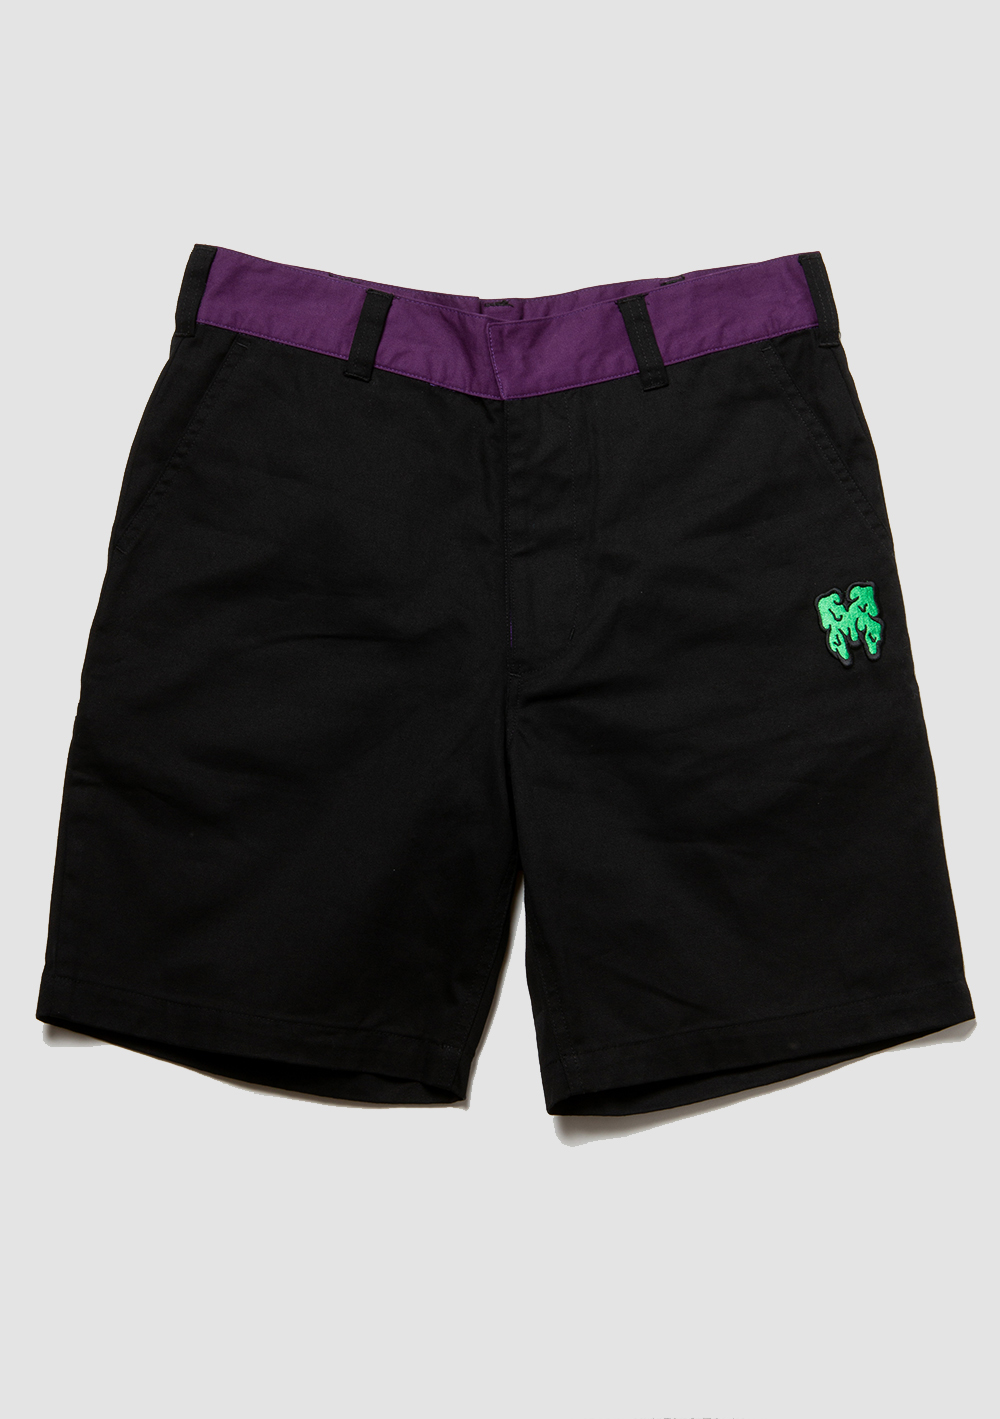 [SOLD OUT] MxMxM WORK SHORTS 00